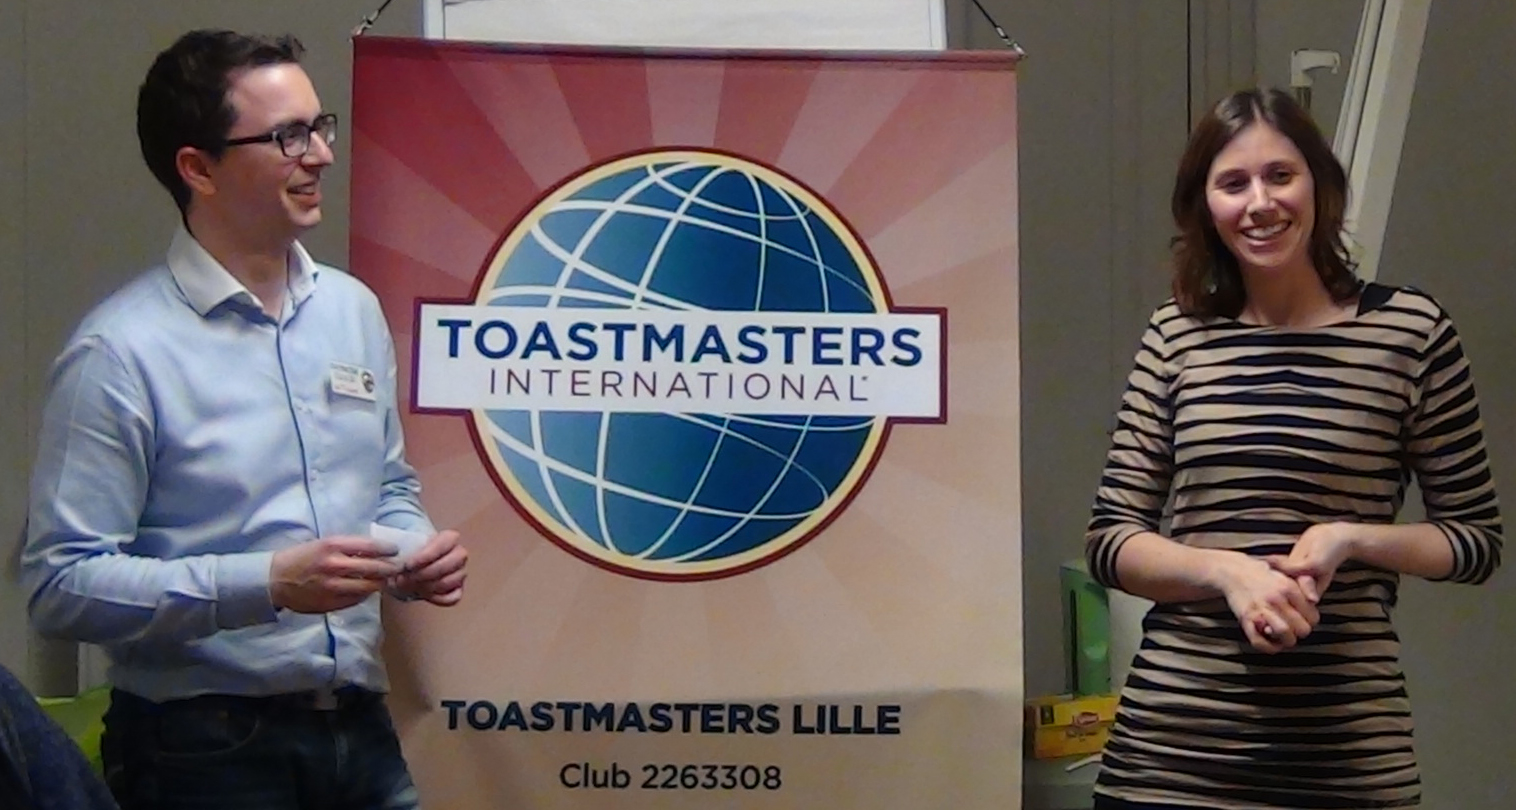 L'Association Toastmasters Lille